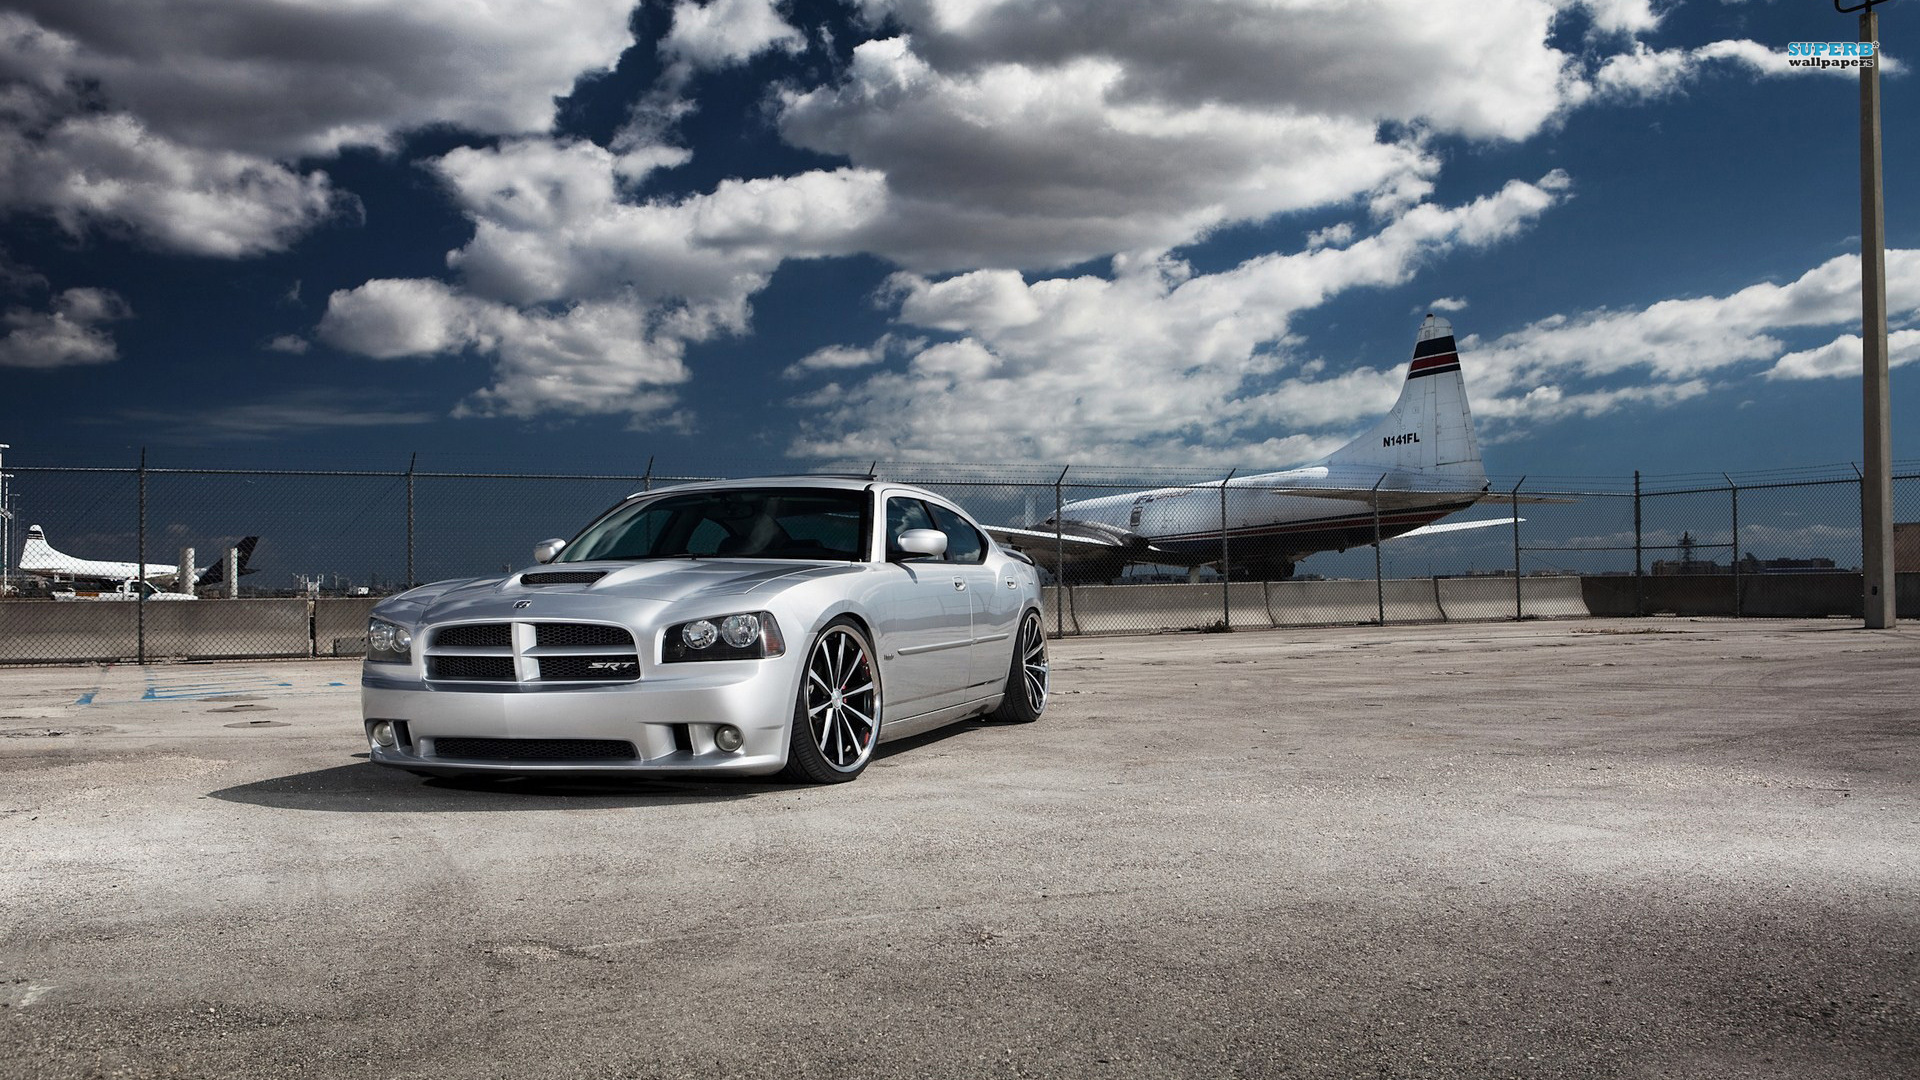 Dodge Charger HD Wallpapers  Backgrounds  Wallpaper  1920x1080